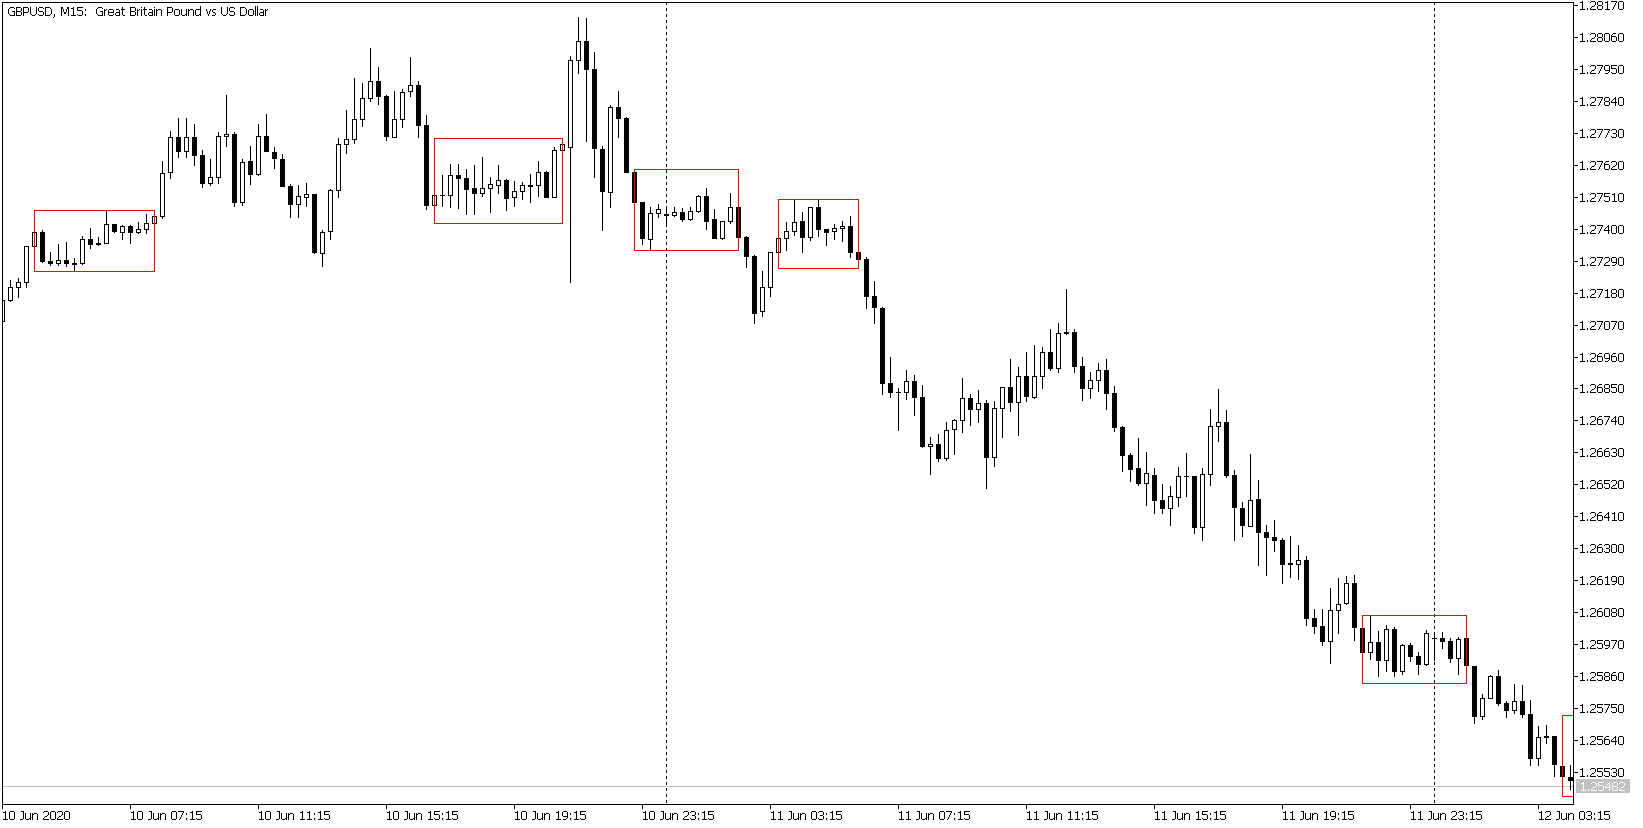 Breakout Box Indicator: When to short?